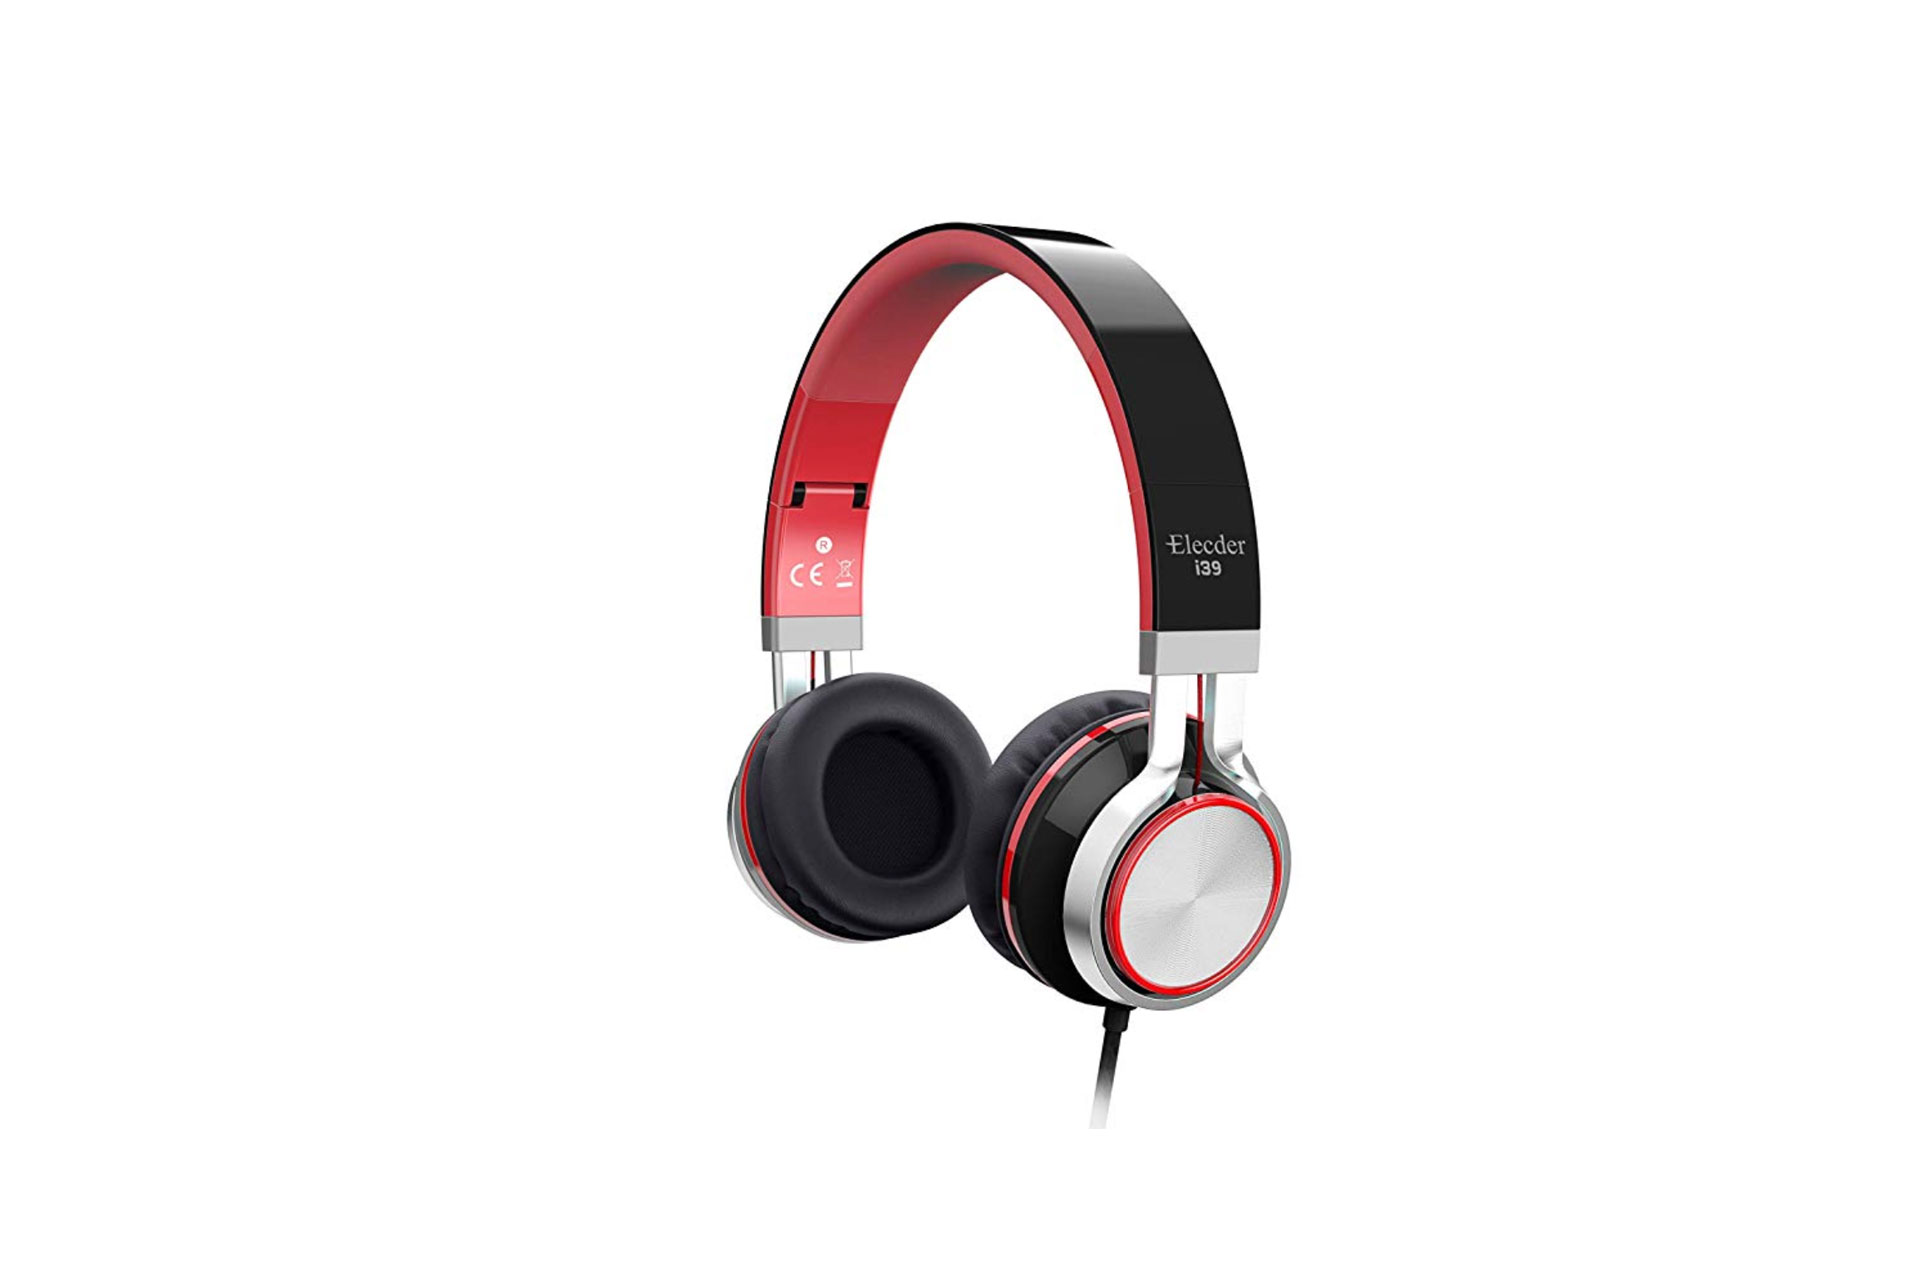 Elecder i39 Headphones with Microphone in Red; Courtesy of Amazon